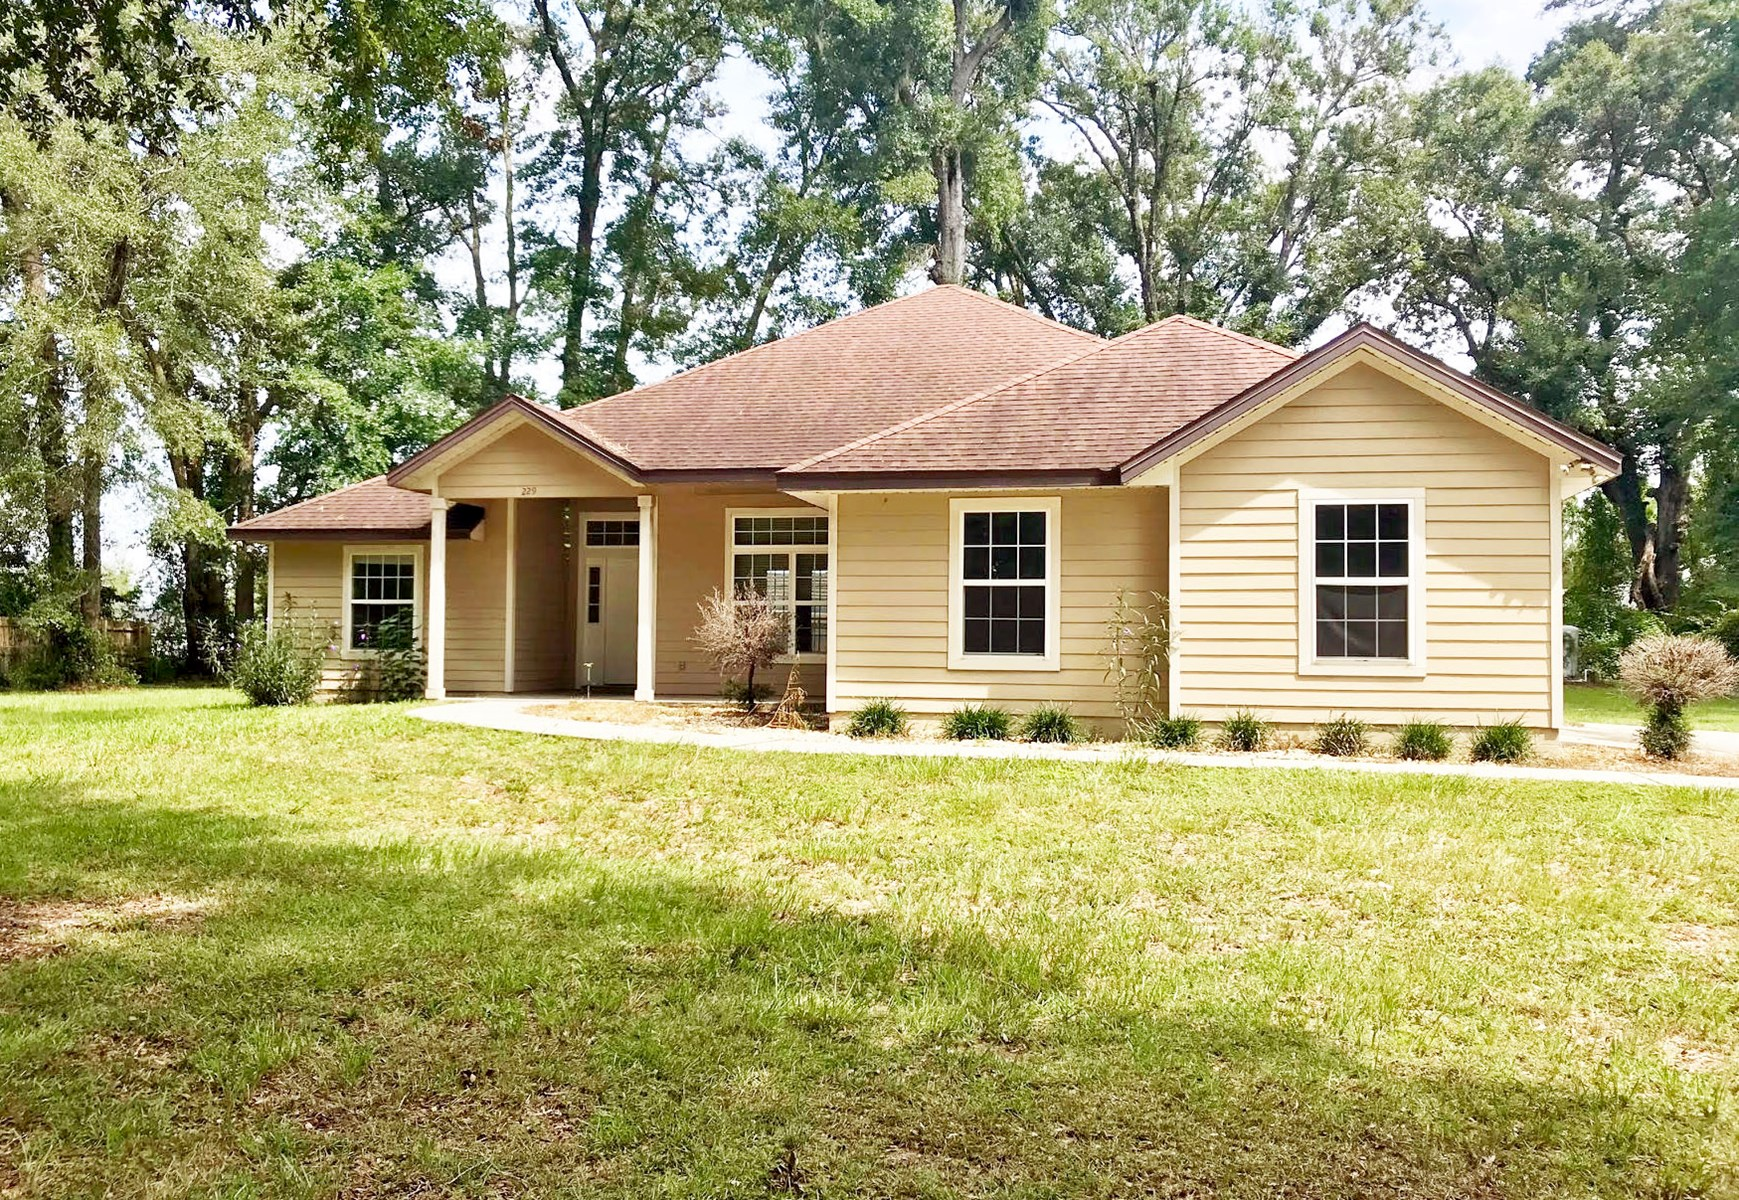 3/2 HOME FOR SALE IN LAKE CITY, FLORIDA